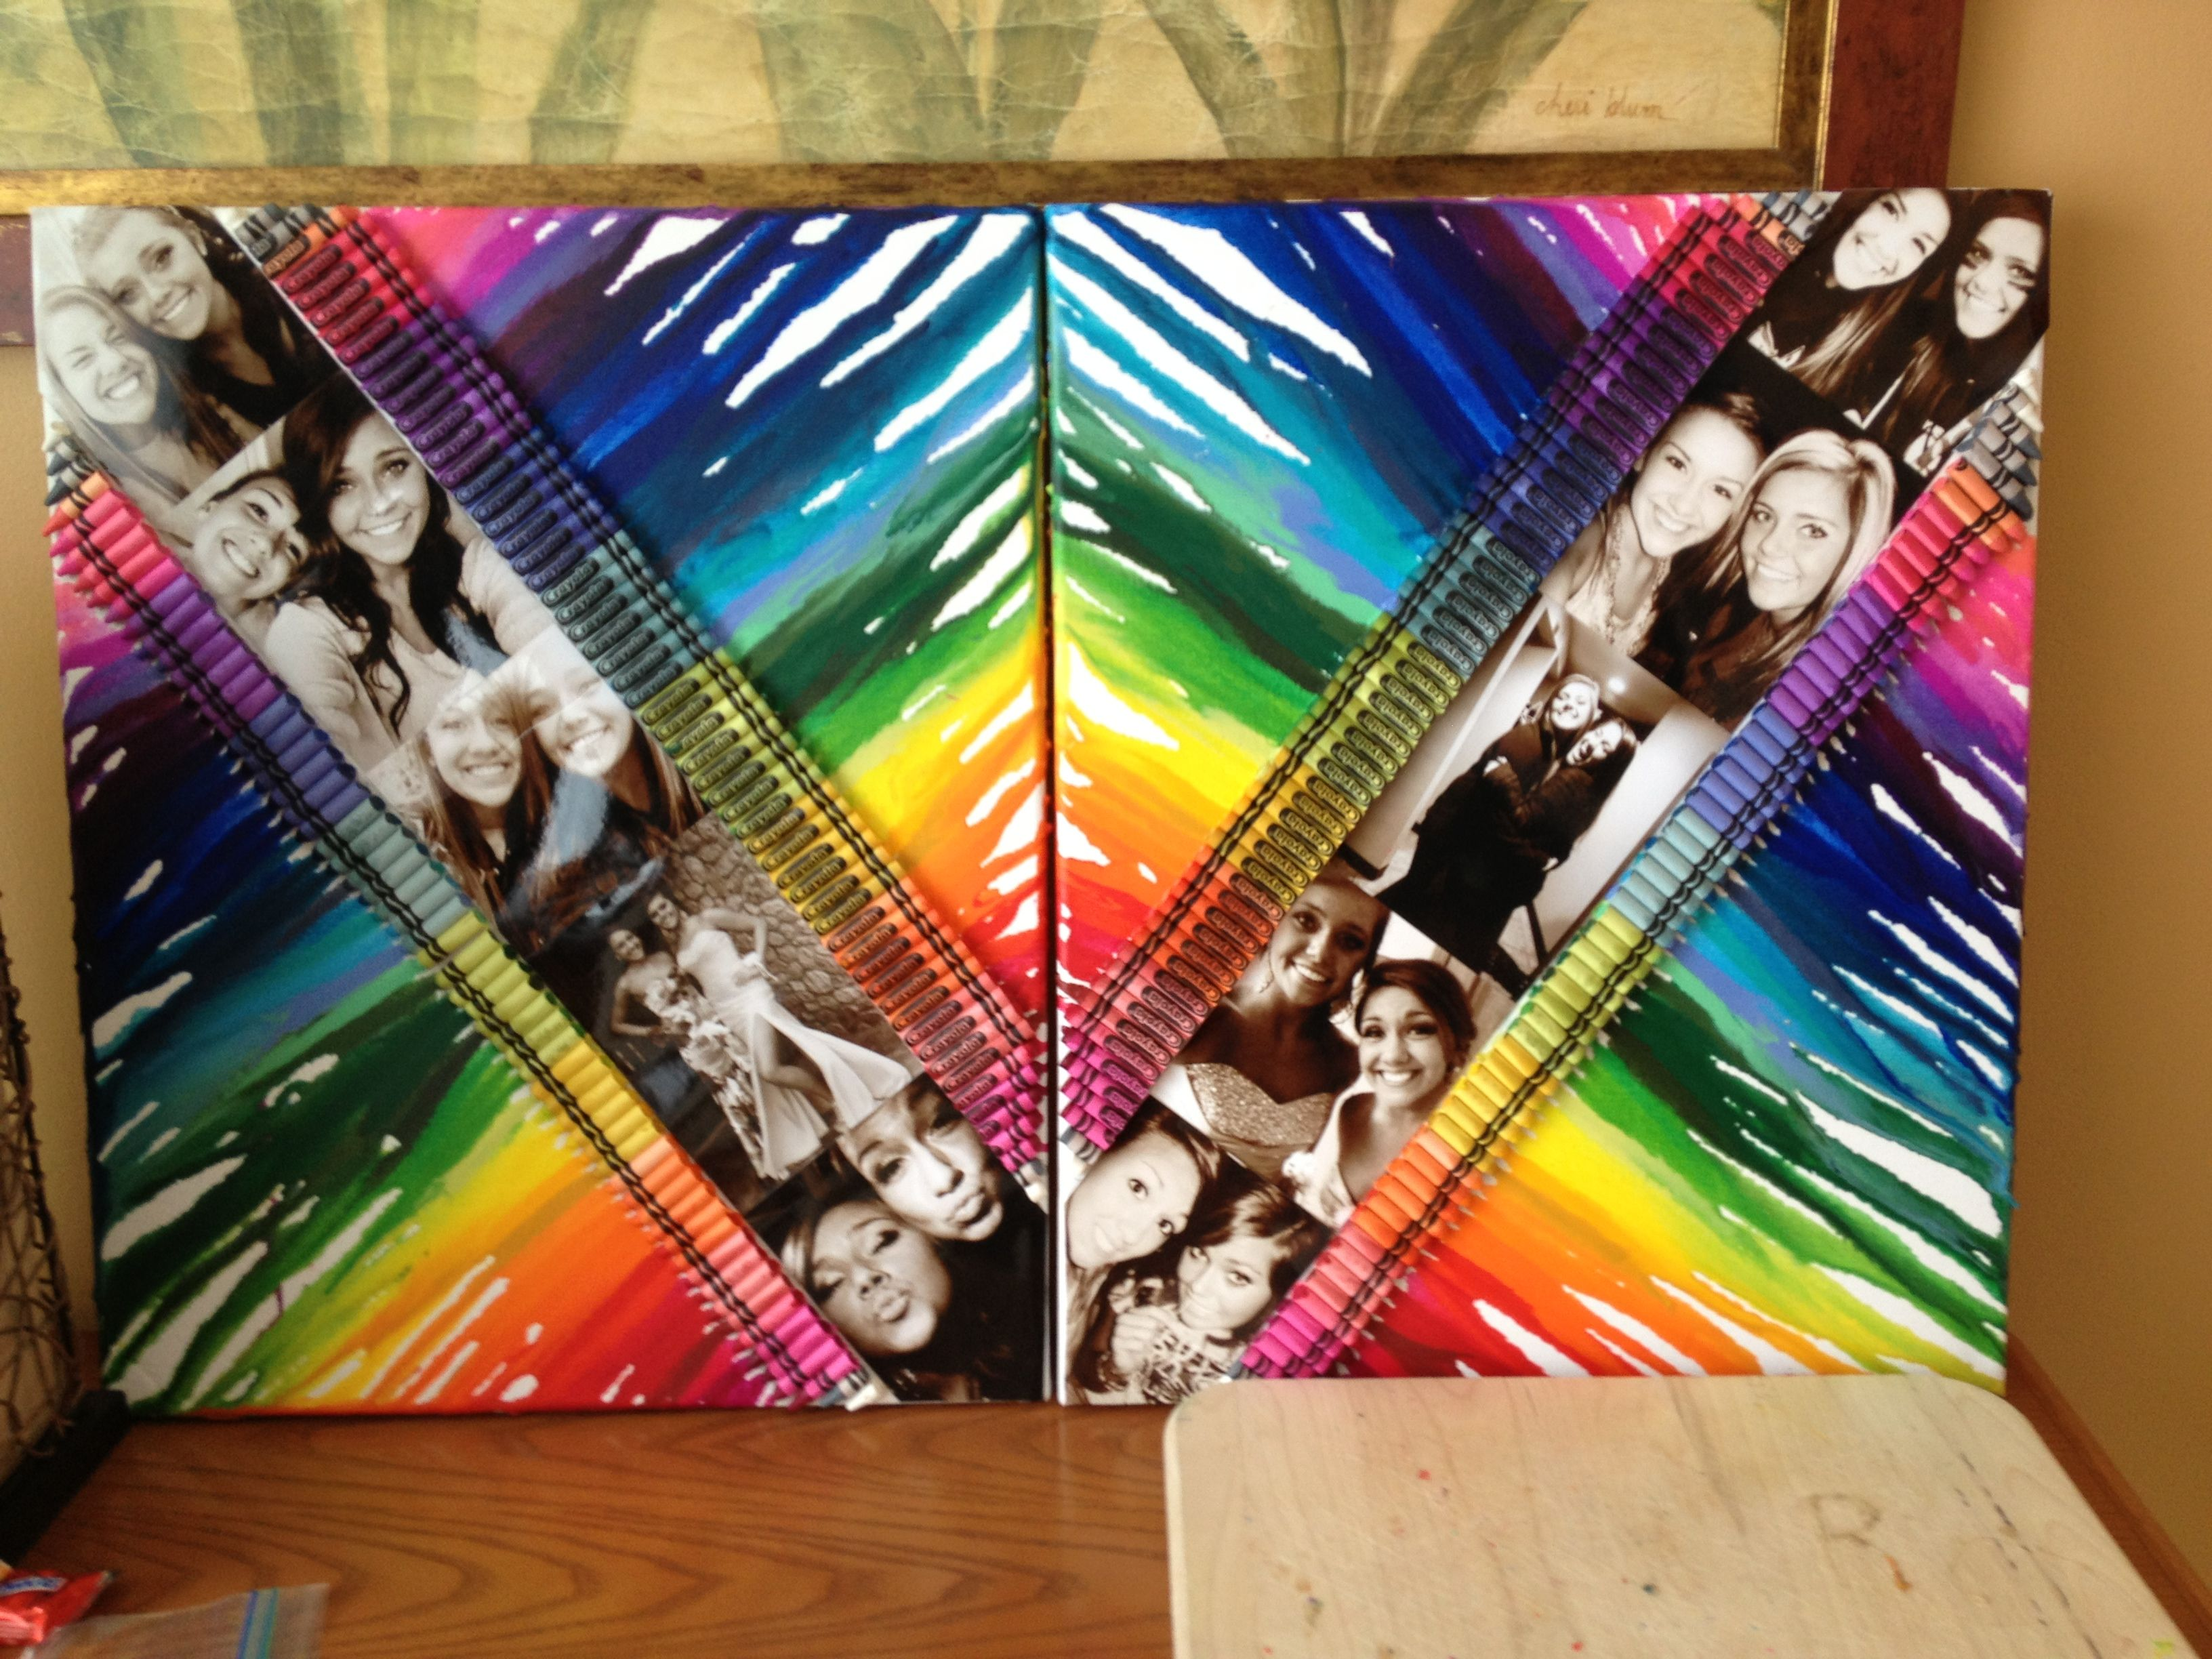 How to make a romantic scrapbook - Melted Crayons On Canvas With Black And White Pictures In The Middle Great For A